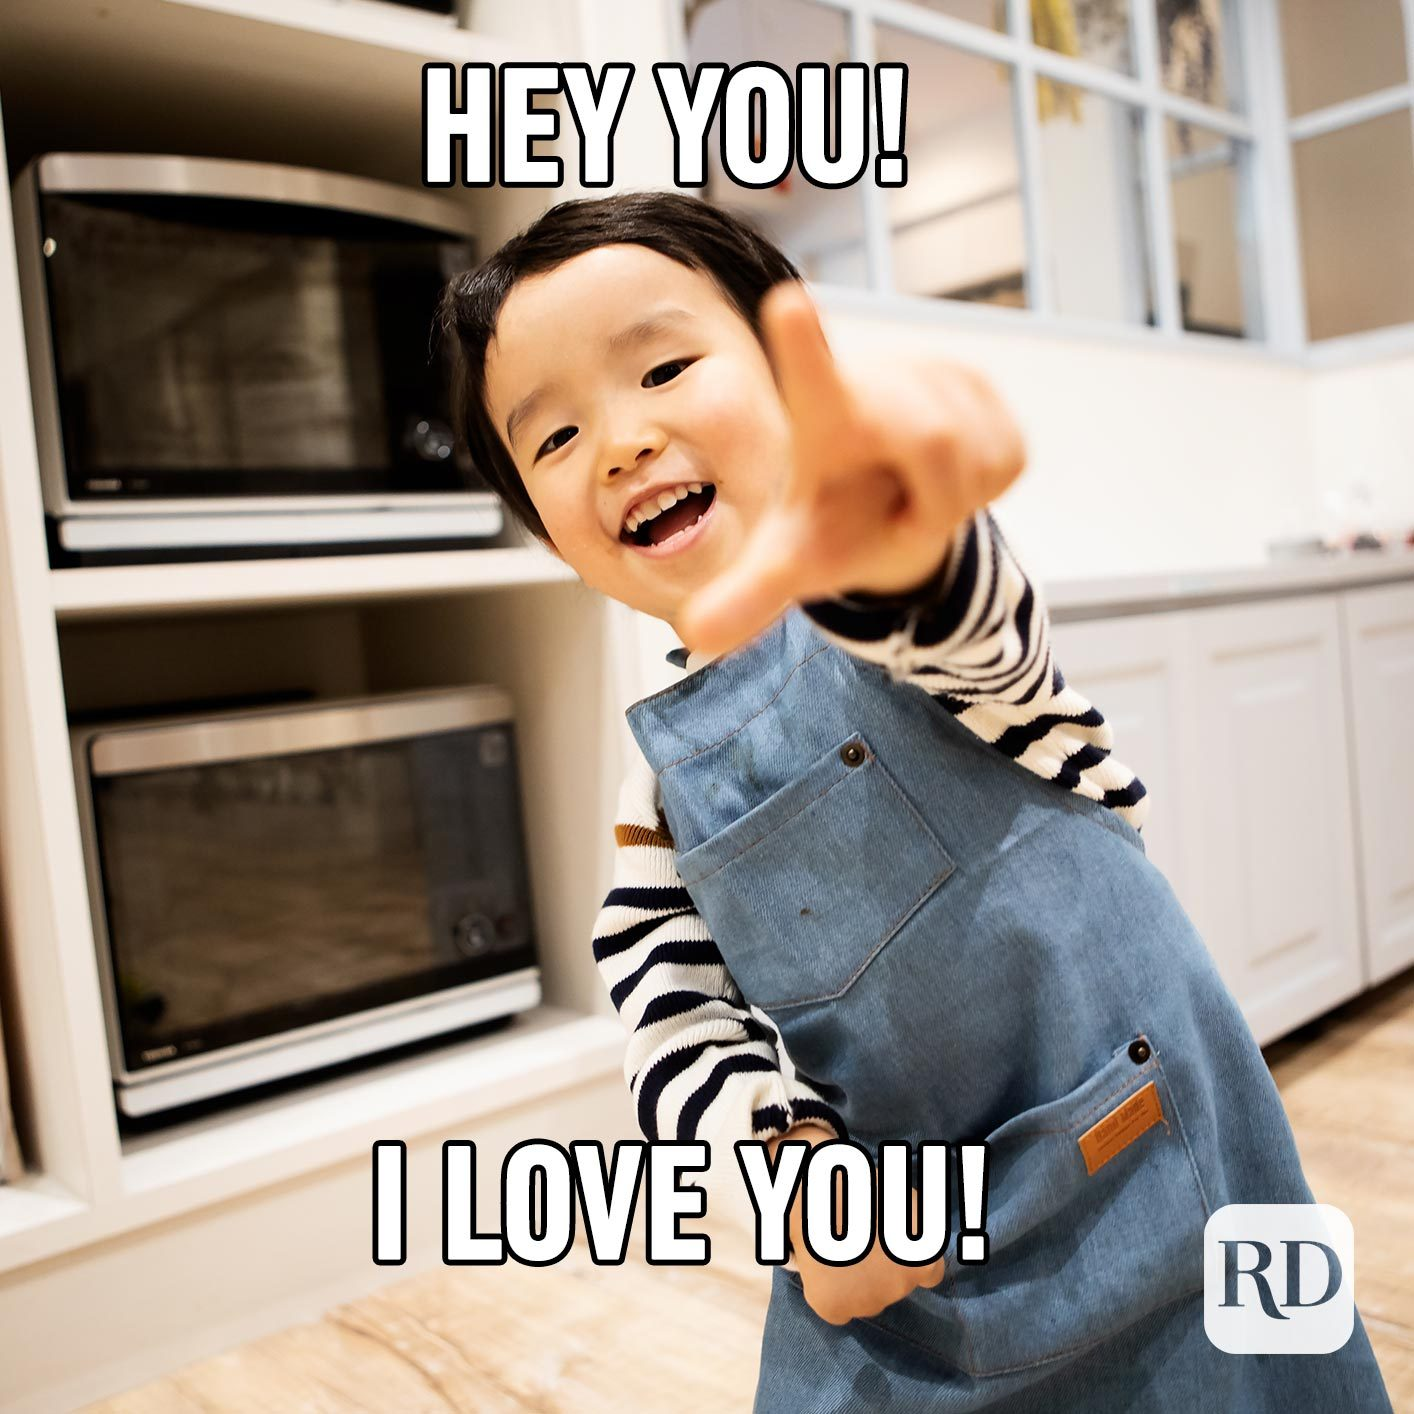 Child pointing at camera. Meme text: Hey you! I love you!